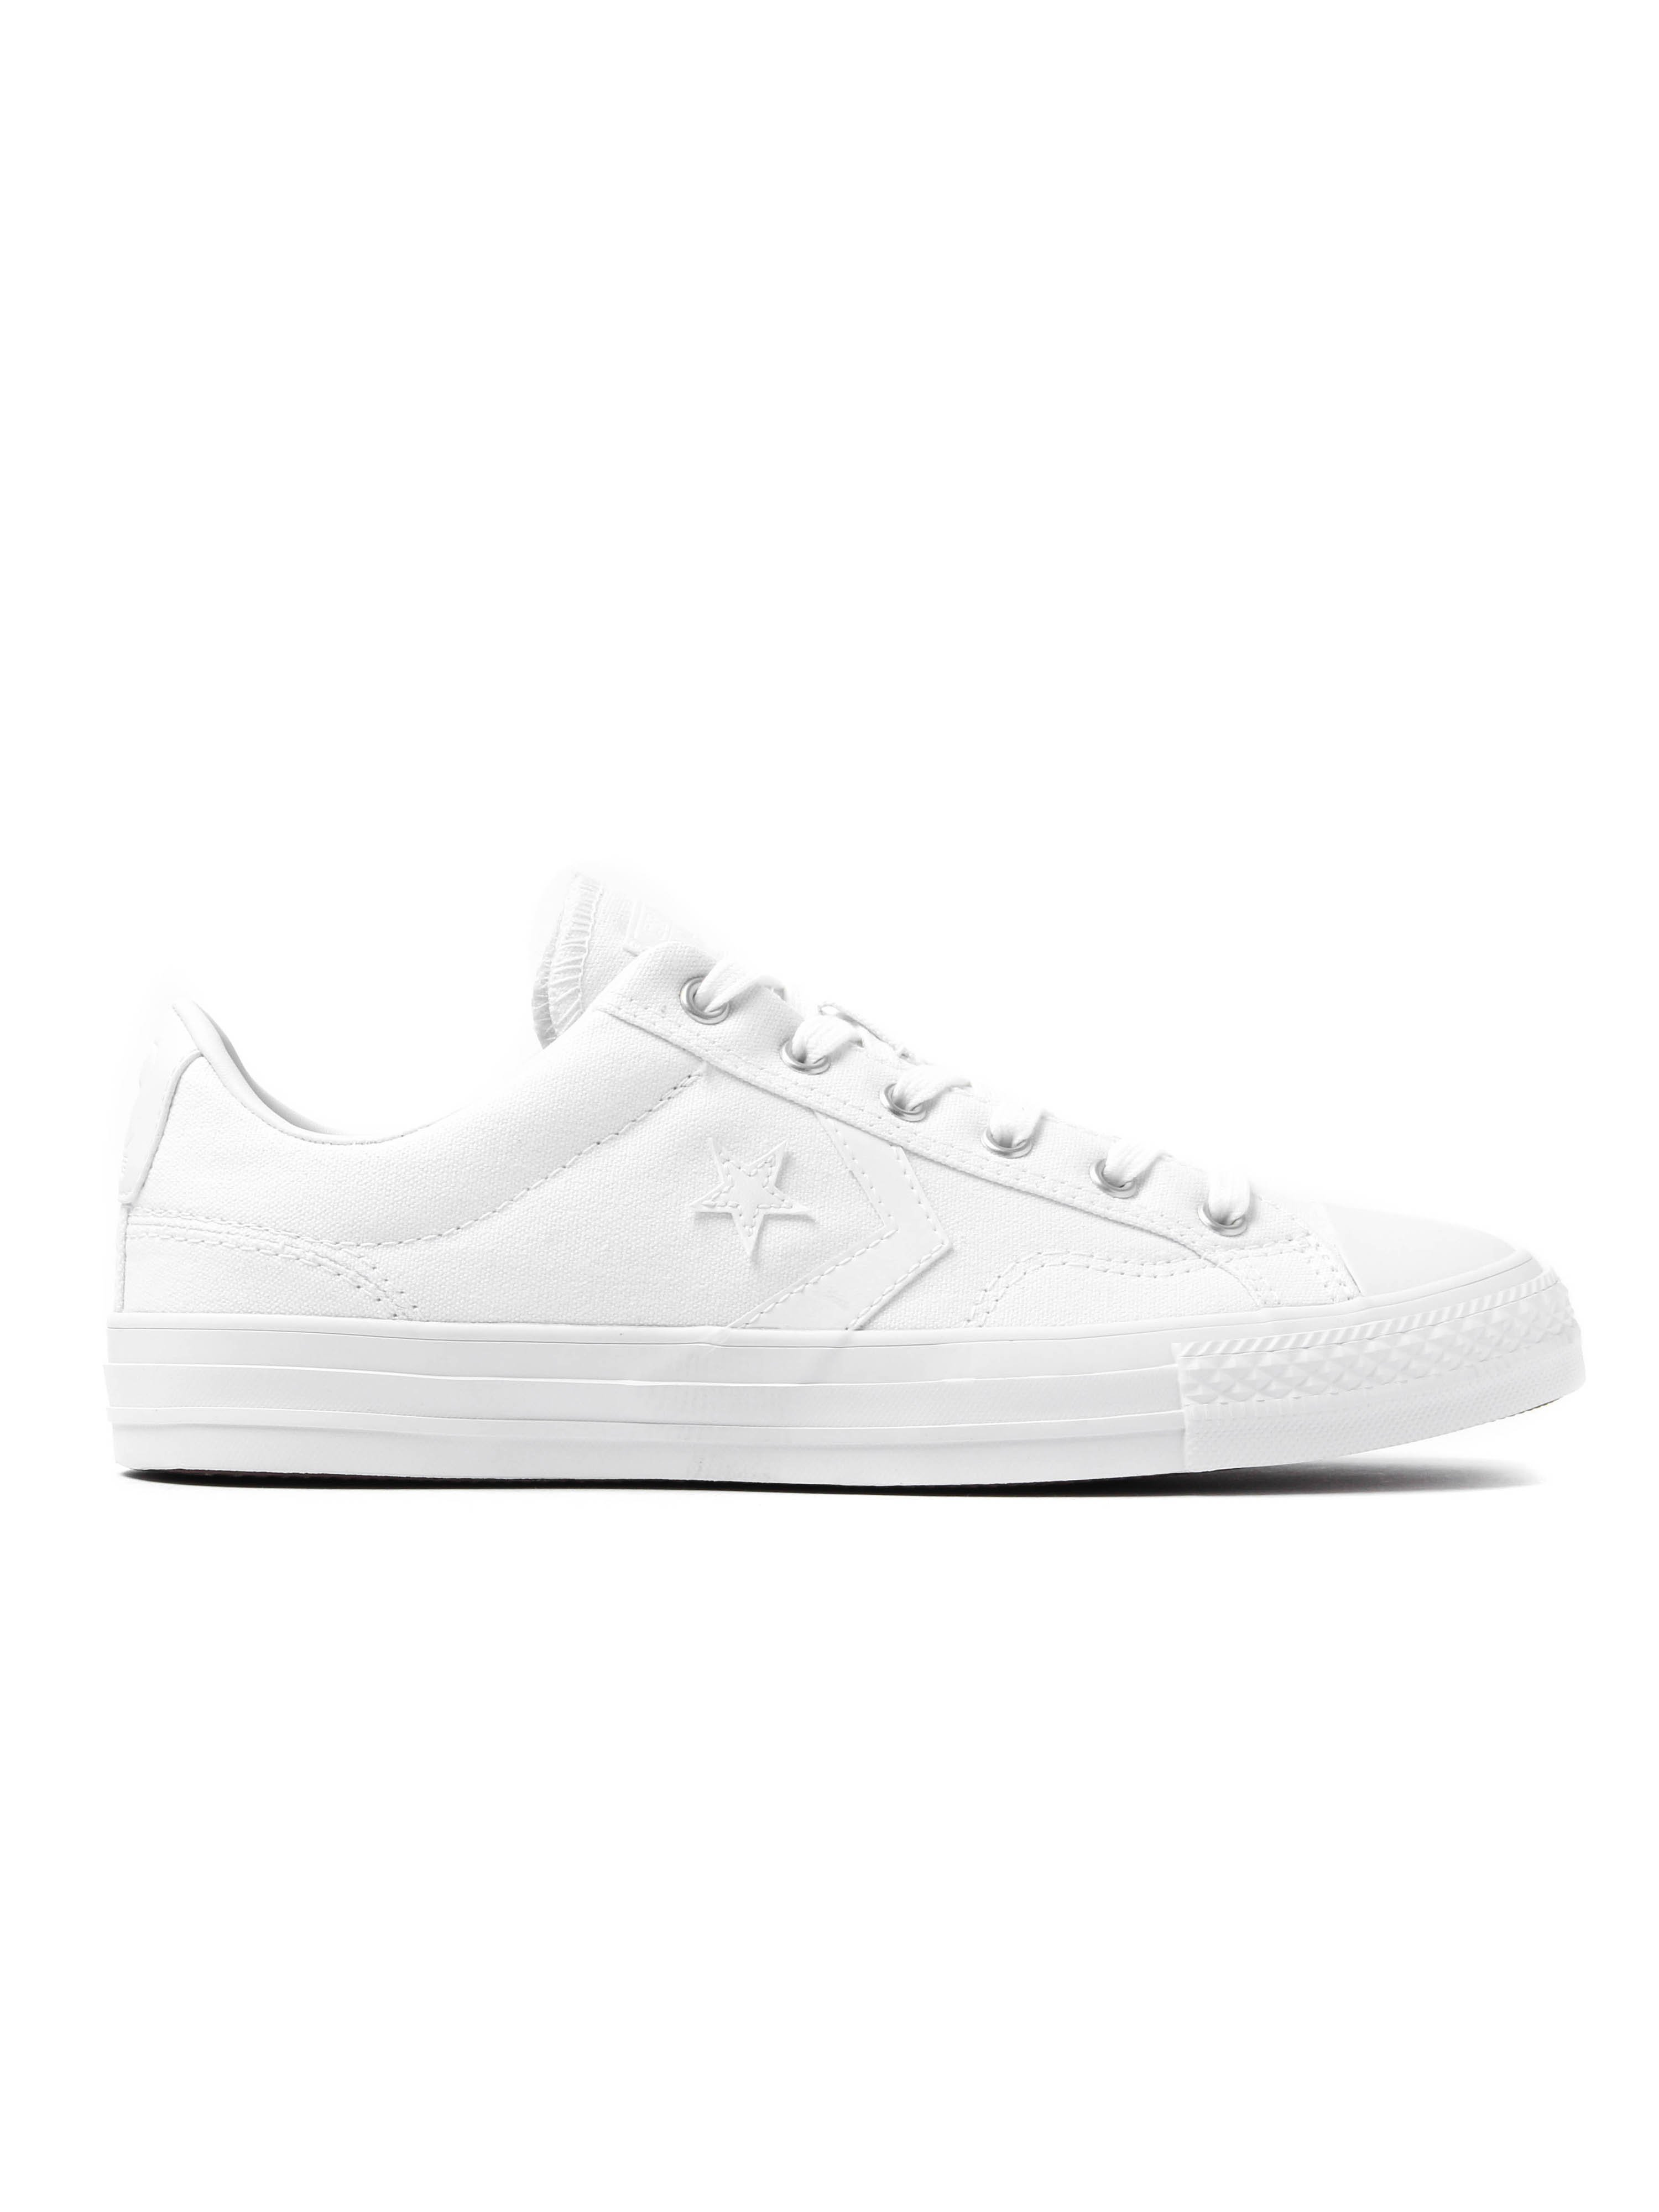 Converse Men's Star Player Trainers - White